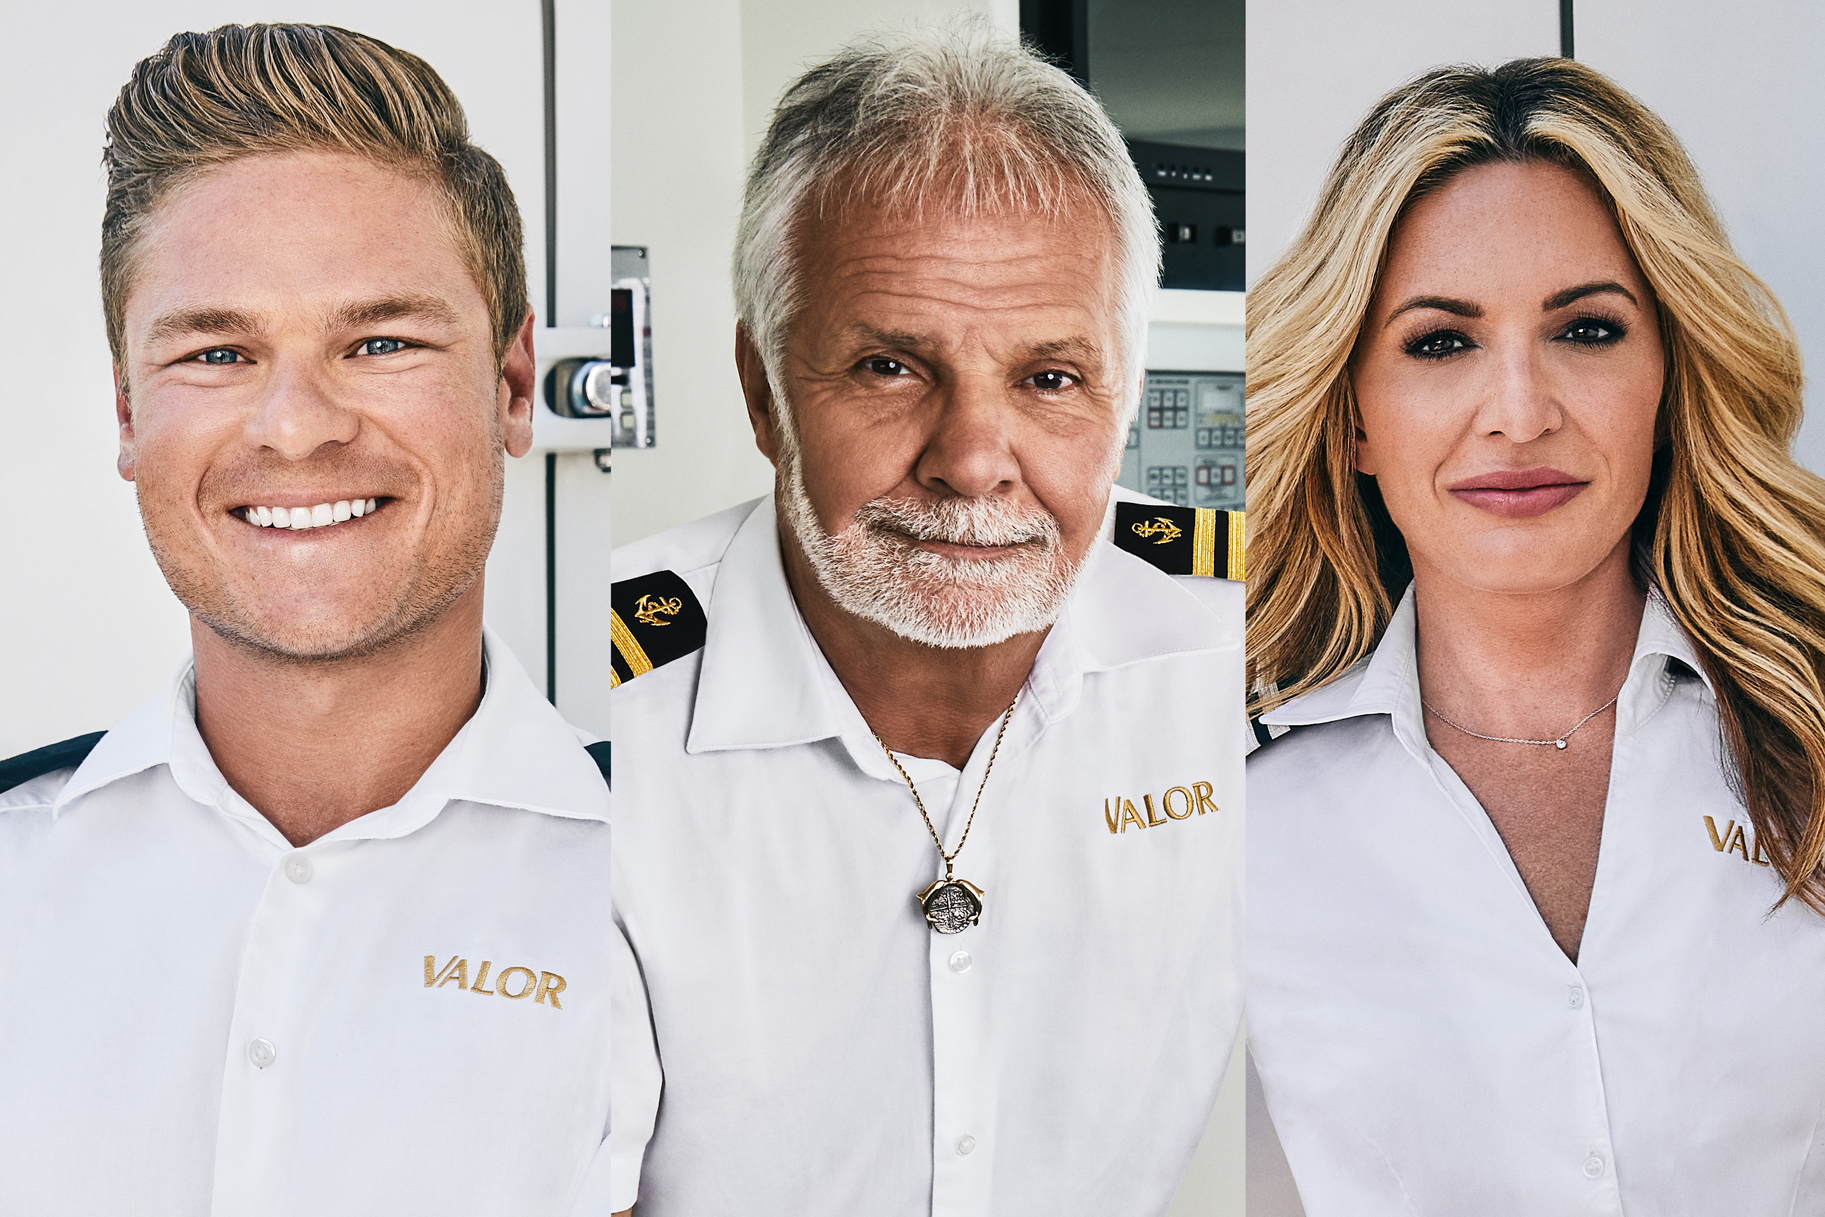 Kate Chastain Ashton Pienaar Captain Lee